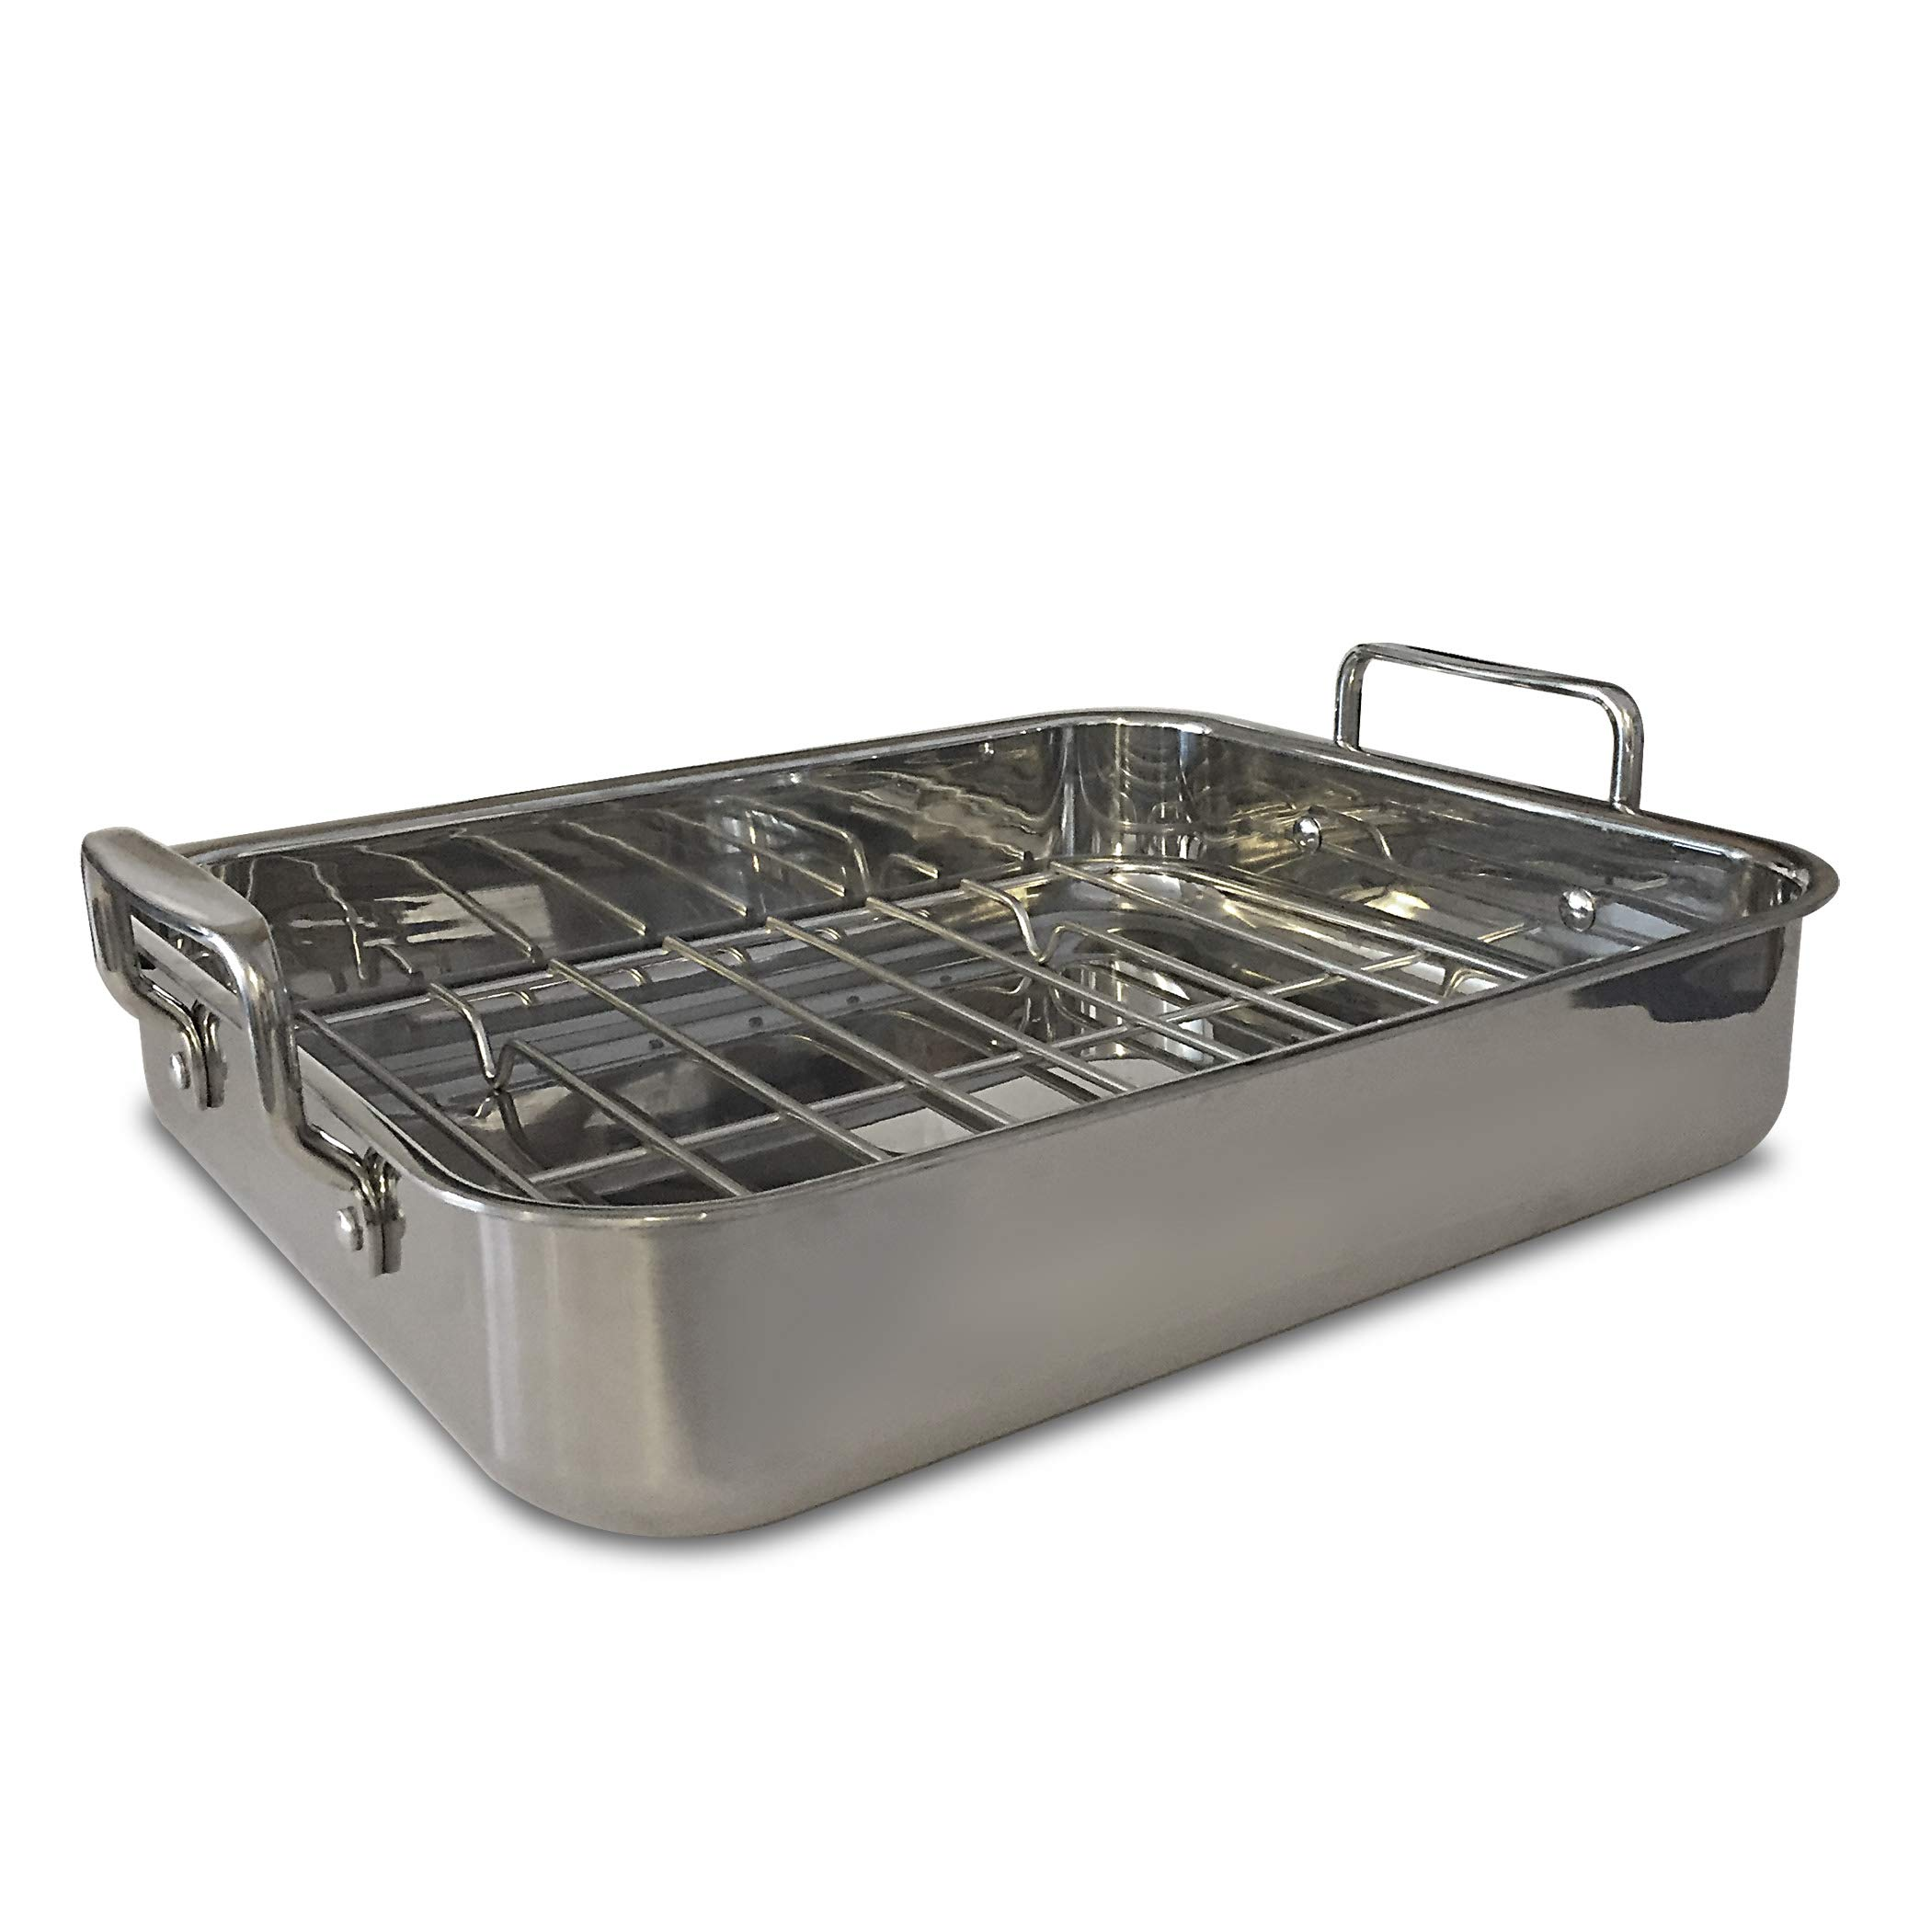 Gourmet Catalog Product 18'' Tri-Ply Stainless Steel Roasting Pan and Rack With Handles